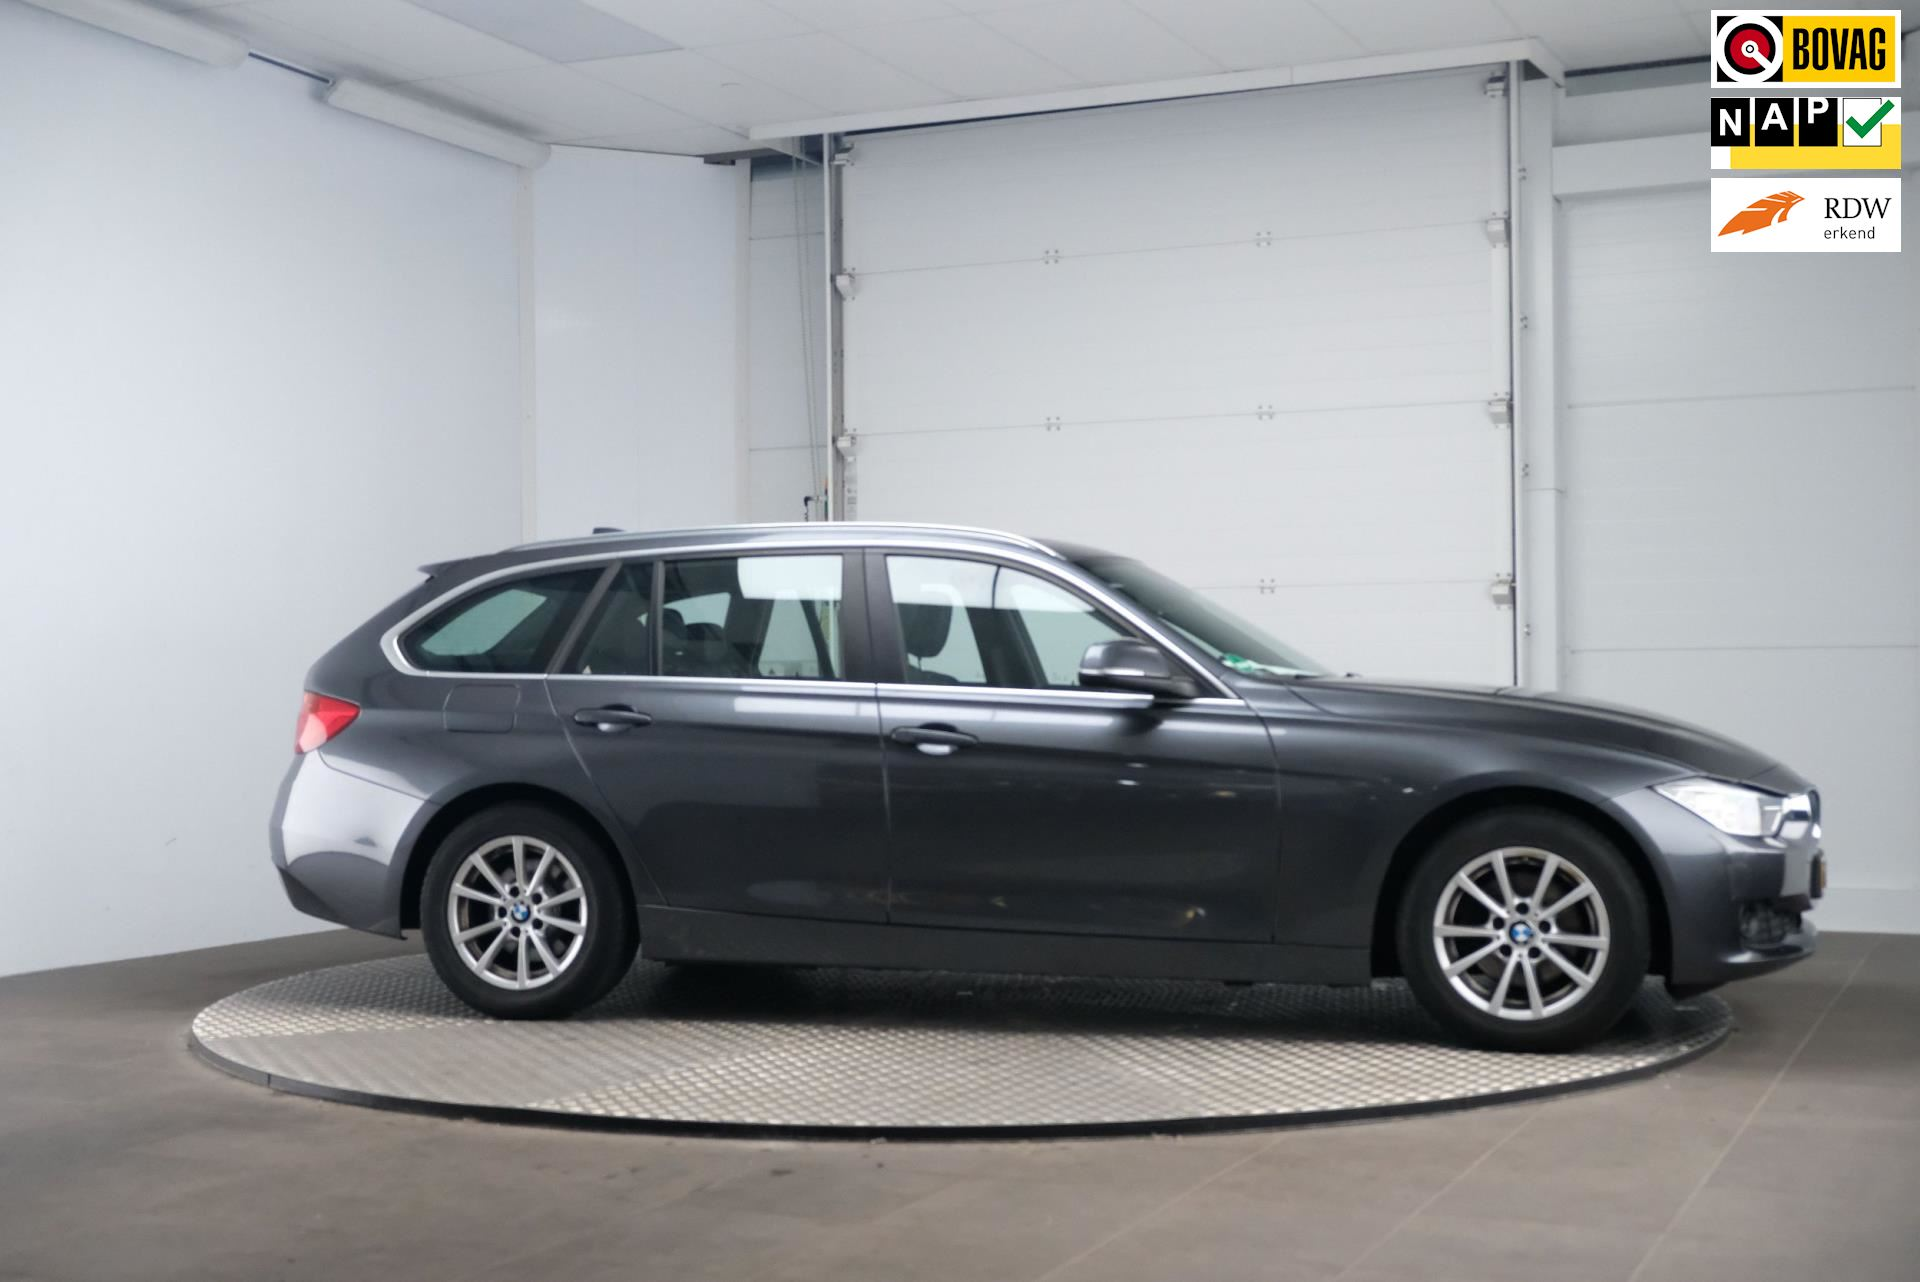 BMW 3-serie Touring occasion - Autobedrijf Ard Butter B.V.